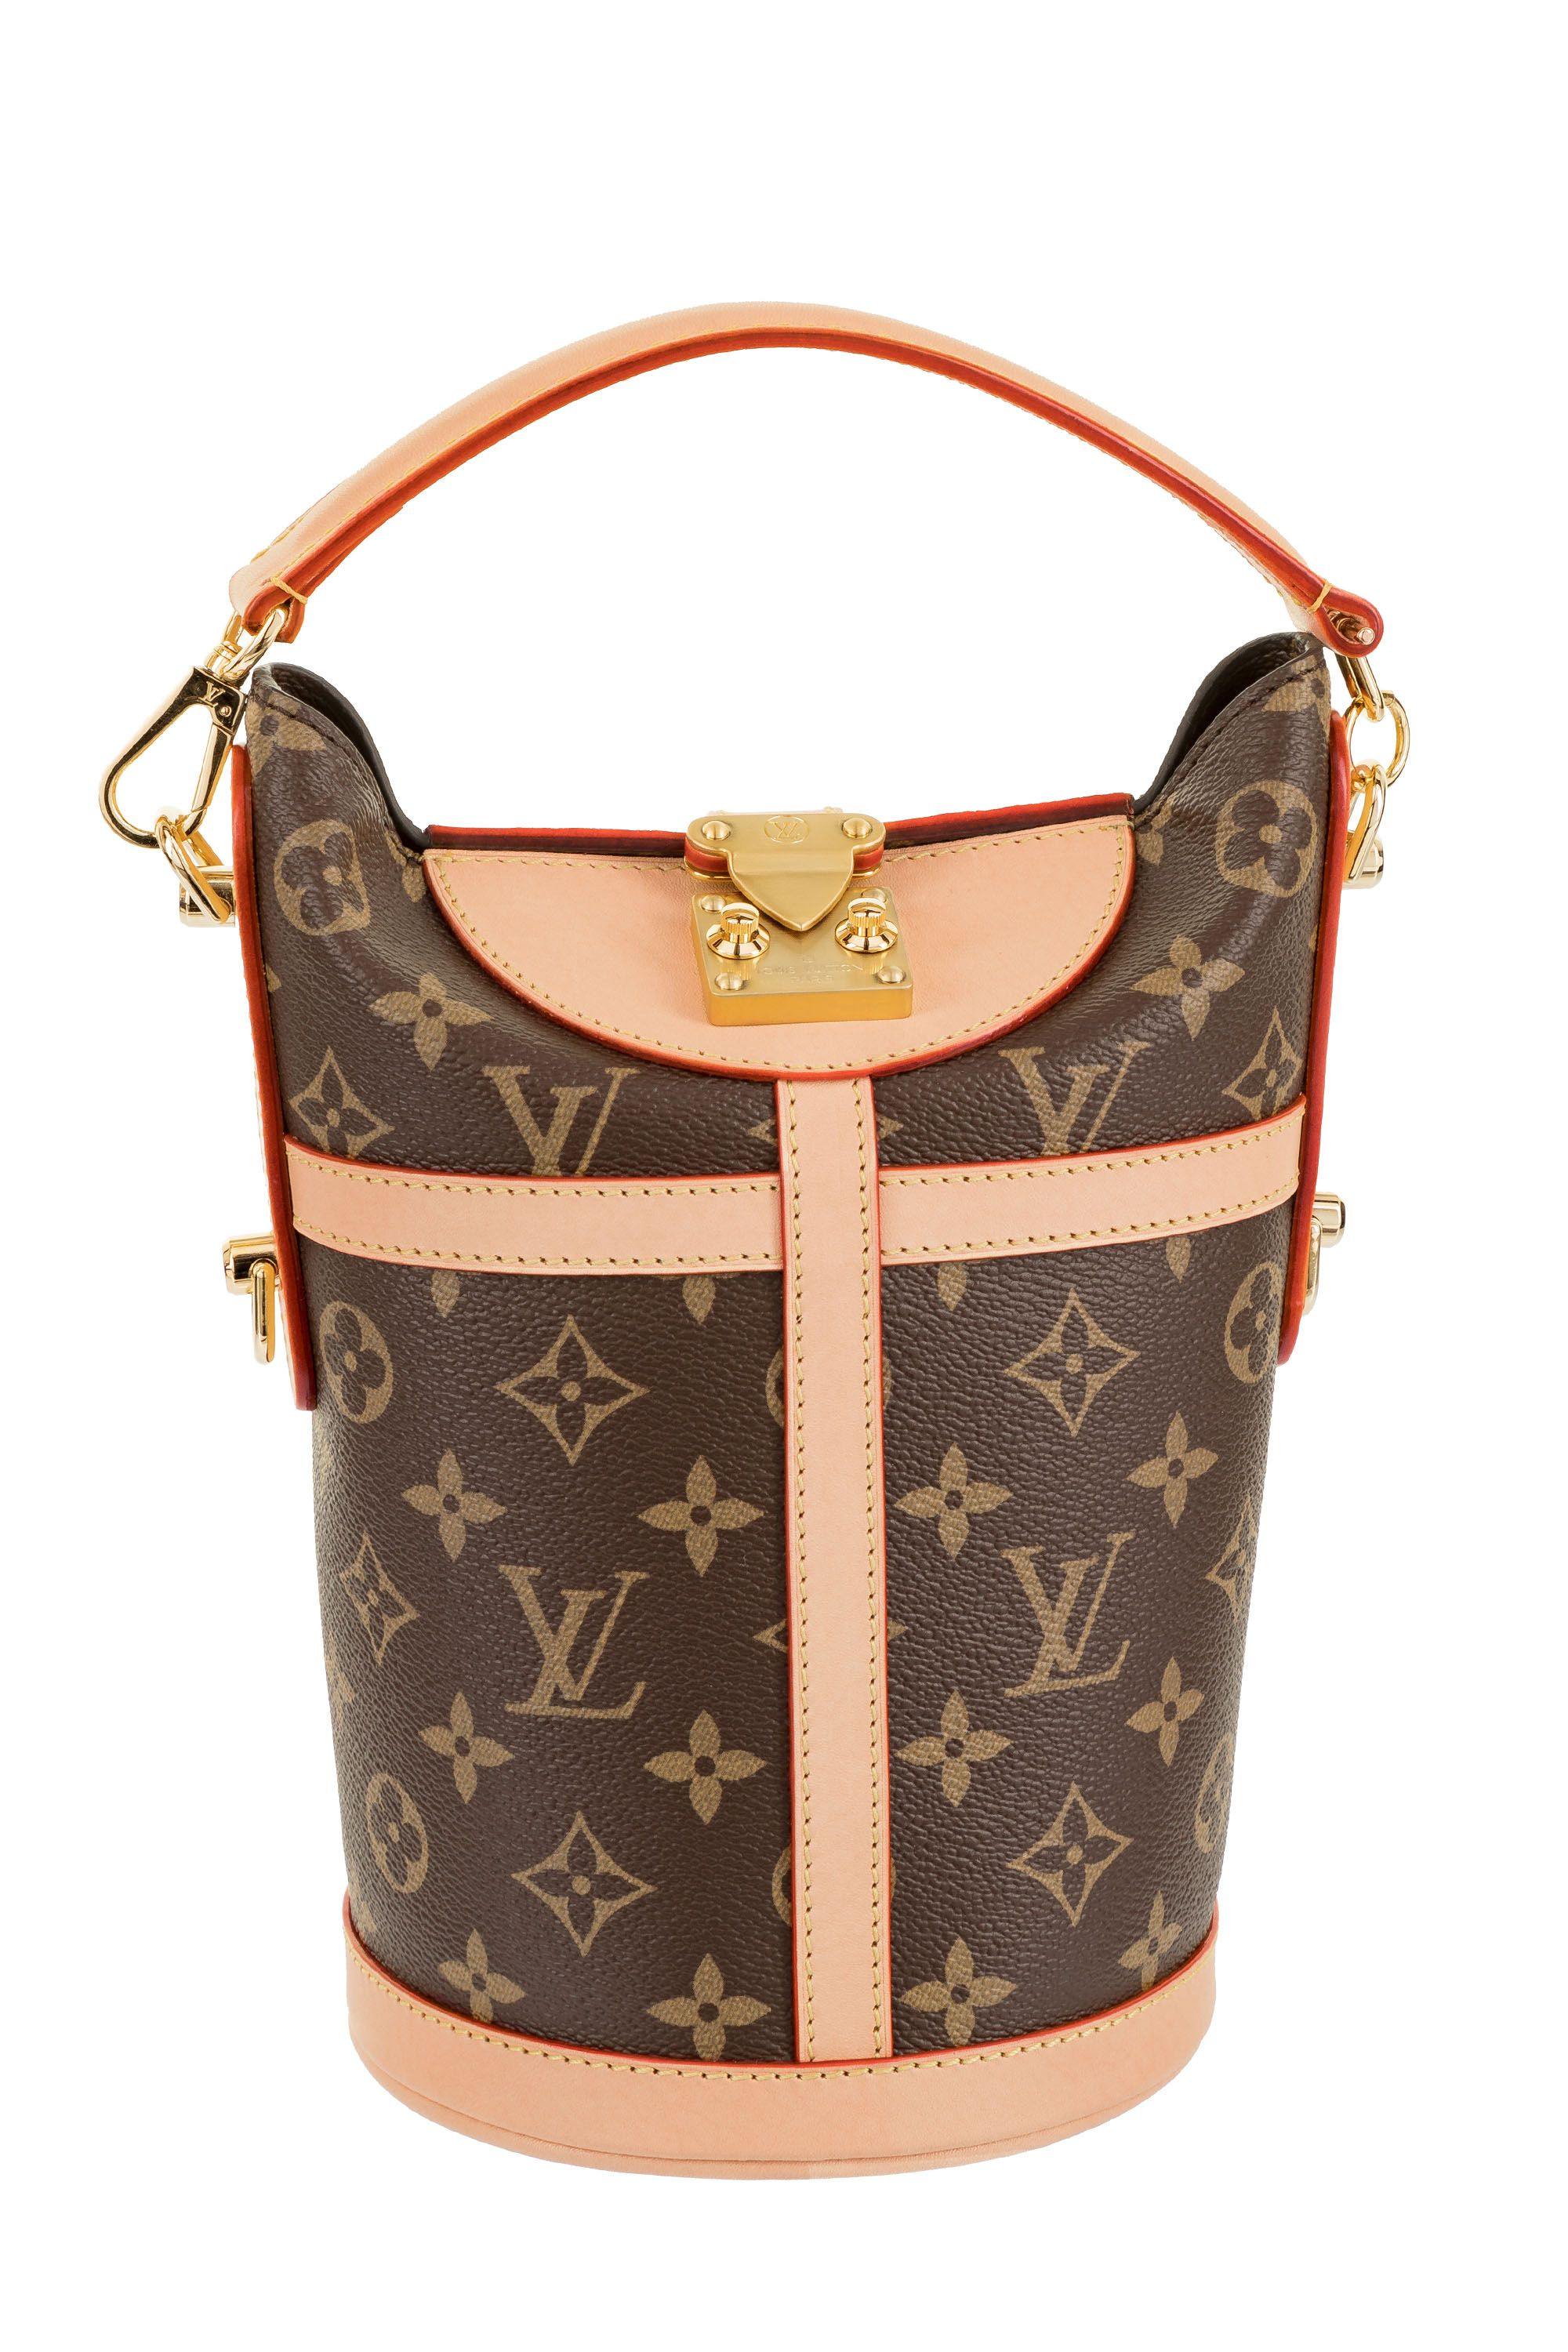 Description  Additional information. Home  Description  About  Payment   Shipping  New Arrivals. Auth LOUIS VUITTON Monogram Canvas Accessories Purse  . 2a5479275b975